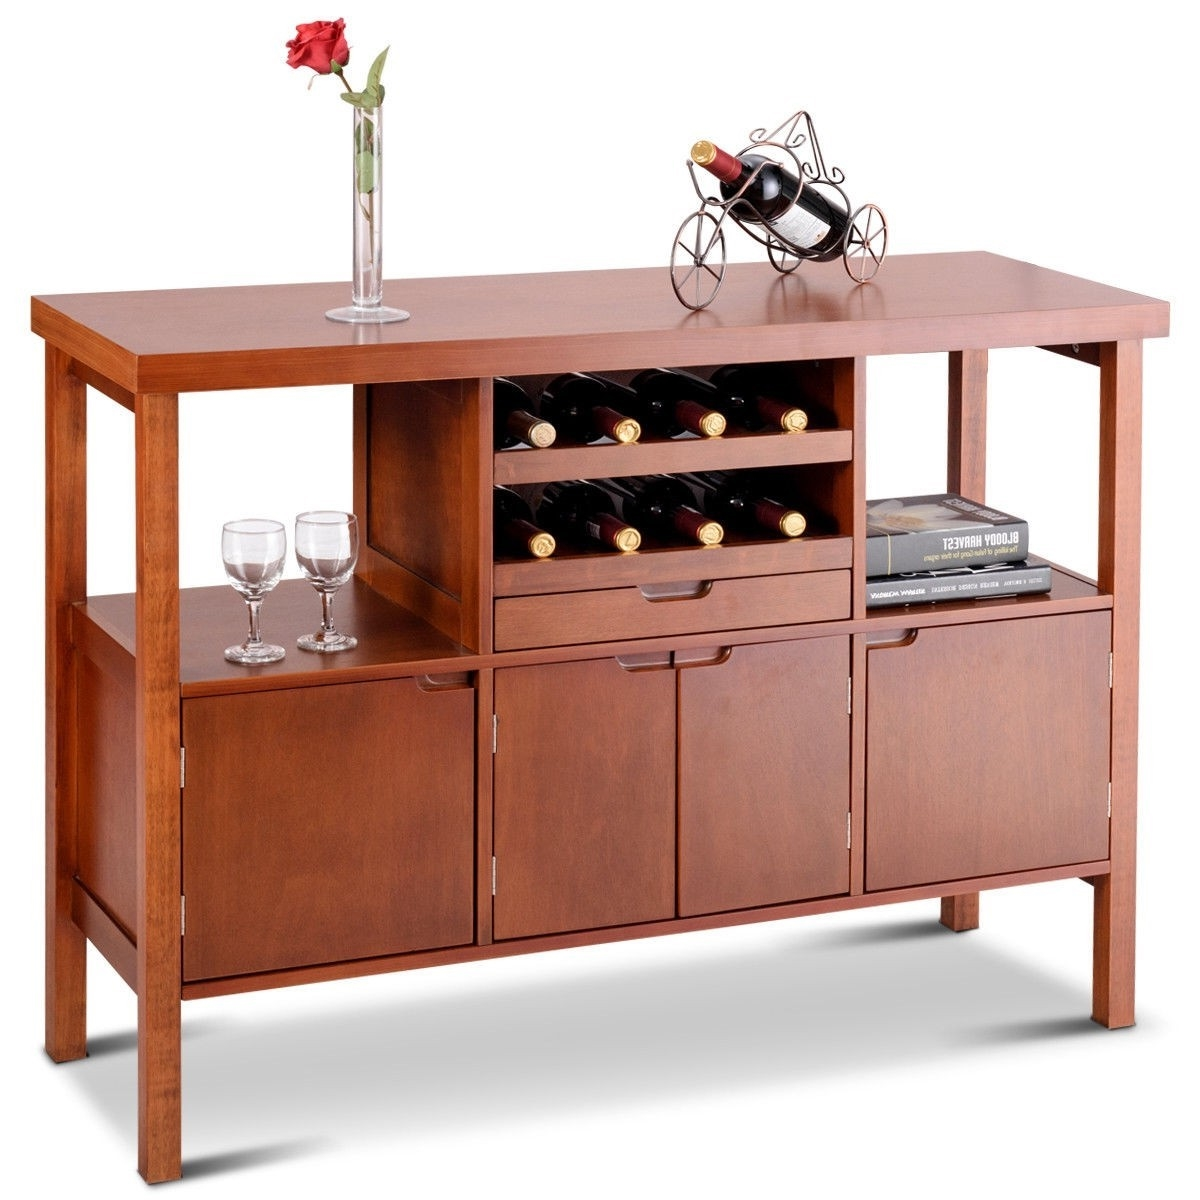 Buffet Sideboard With Wine Rack Modern Sideboard Buffet Cabinet With Wine Rack In Brown Wood Finish